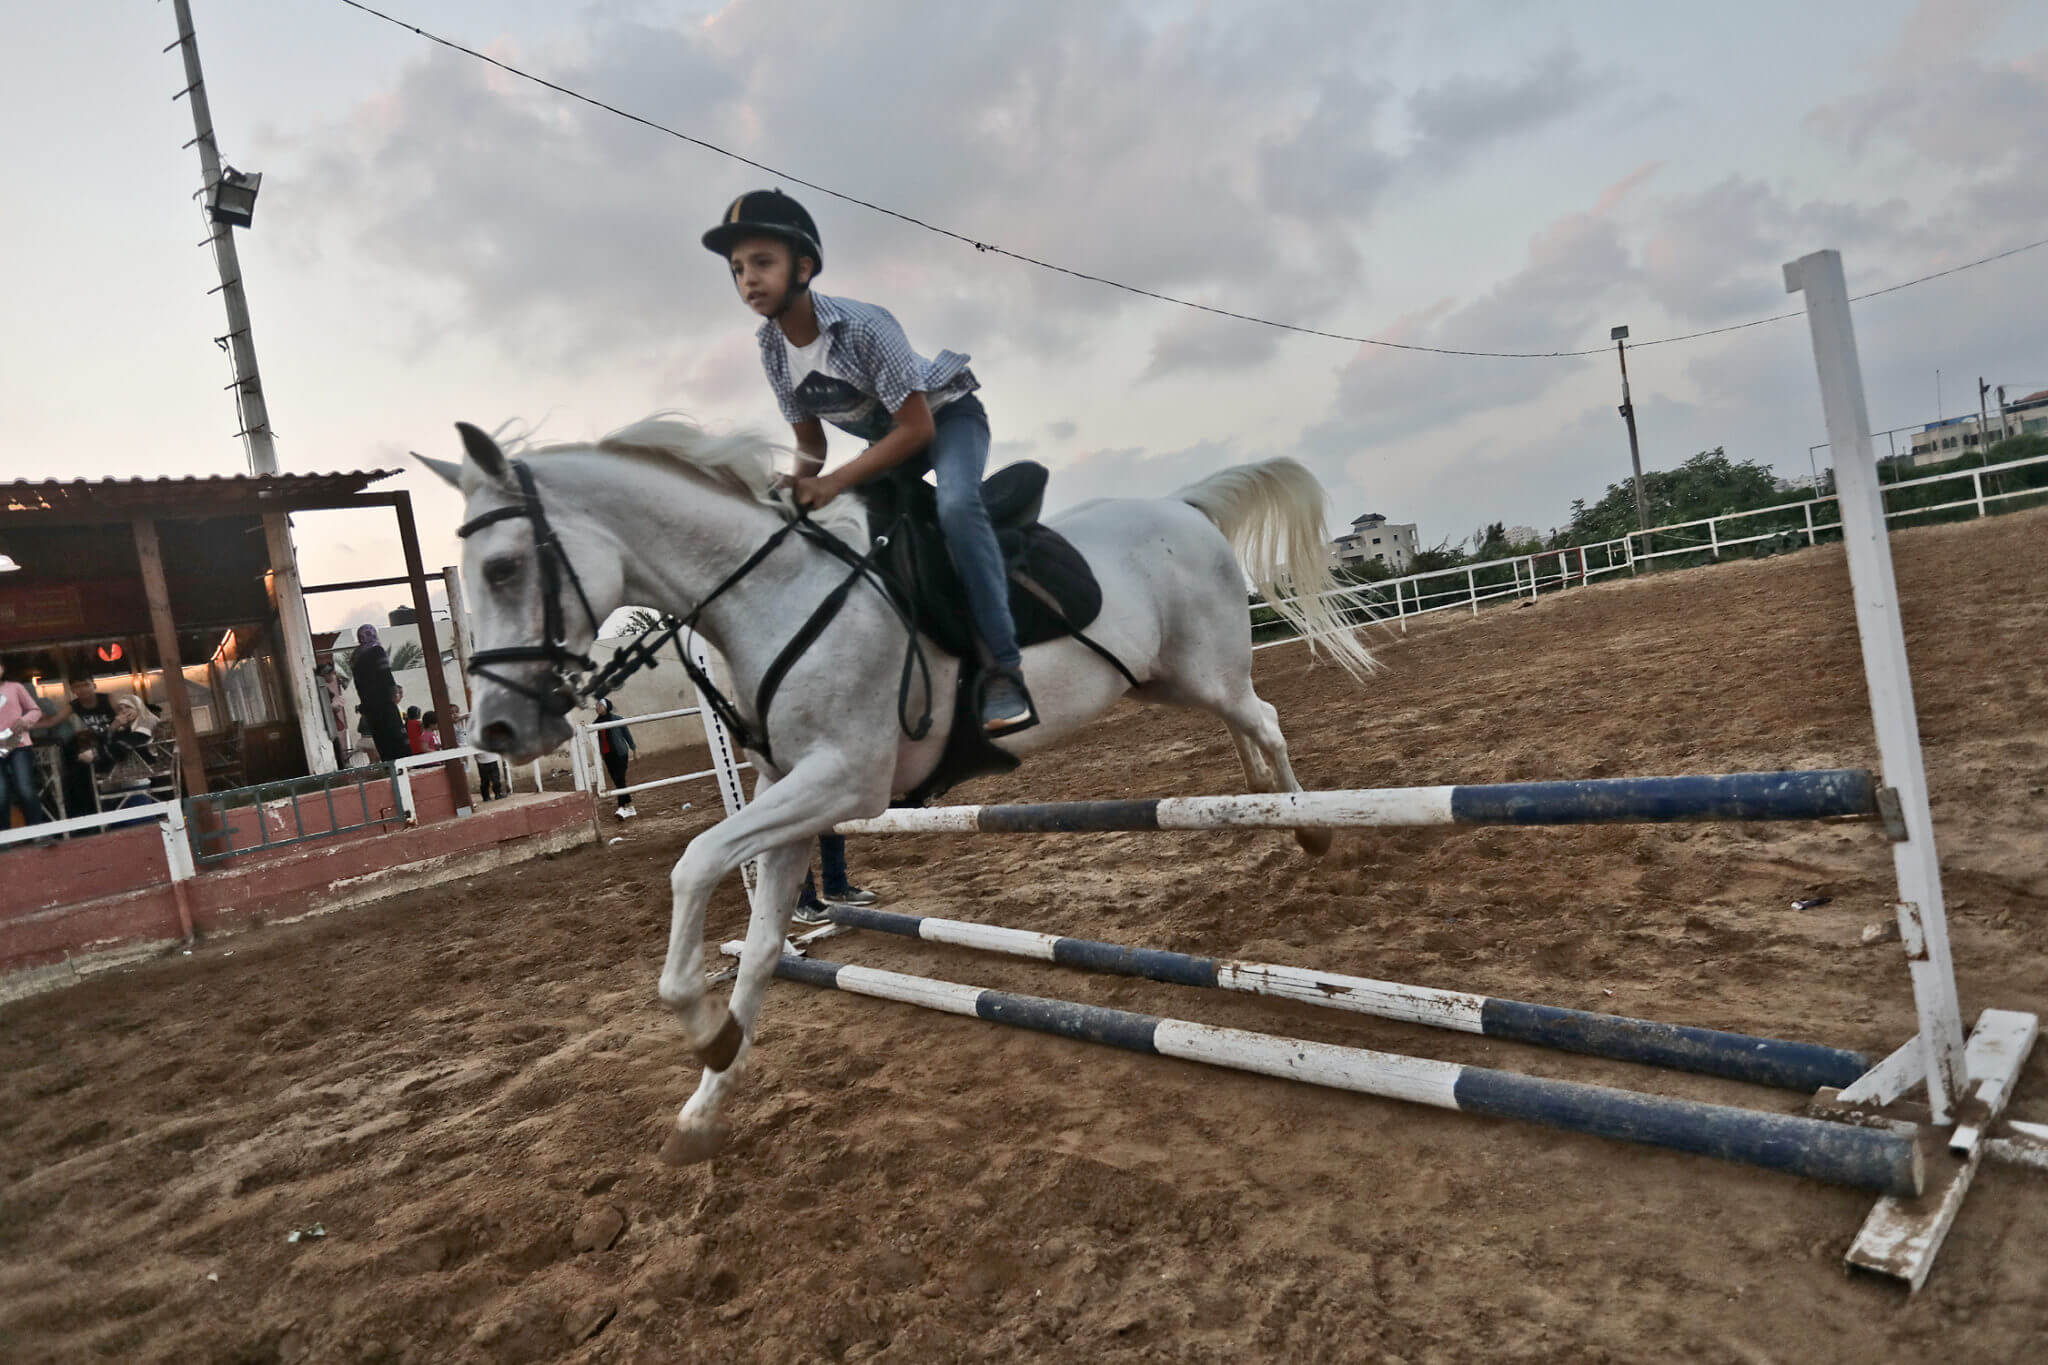 An equestrian competition in Gaza city